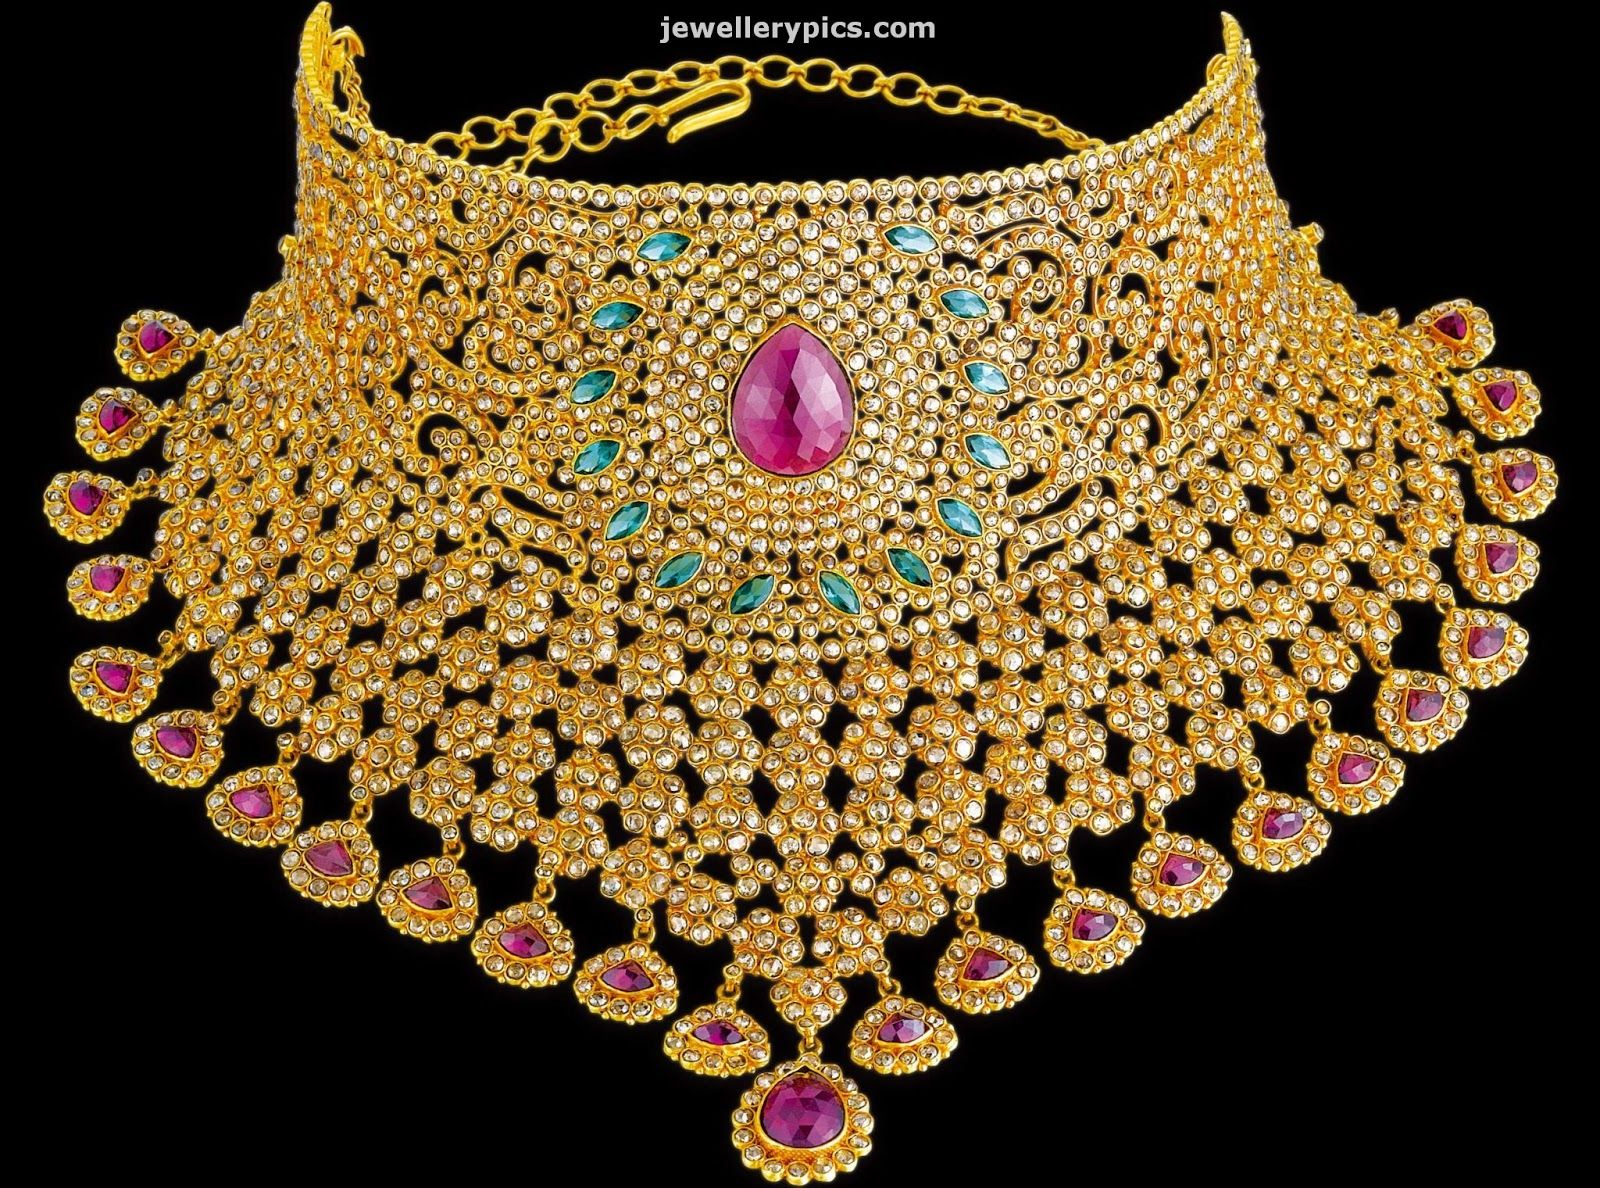 Http 3 Bp Blogspot Com Fkxwvnsqno4 Uufh4hdcbei Aaaaaaaaqru Gu V5sv2qay S1600 Kalyan J Choker Necklace Designs Gold Necklace Designs Bridal Diamond Jewellery